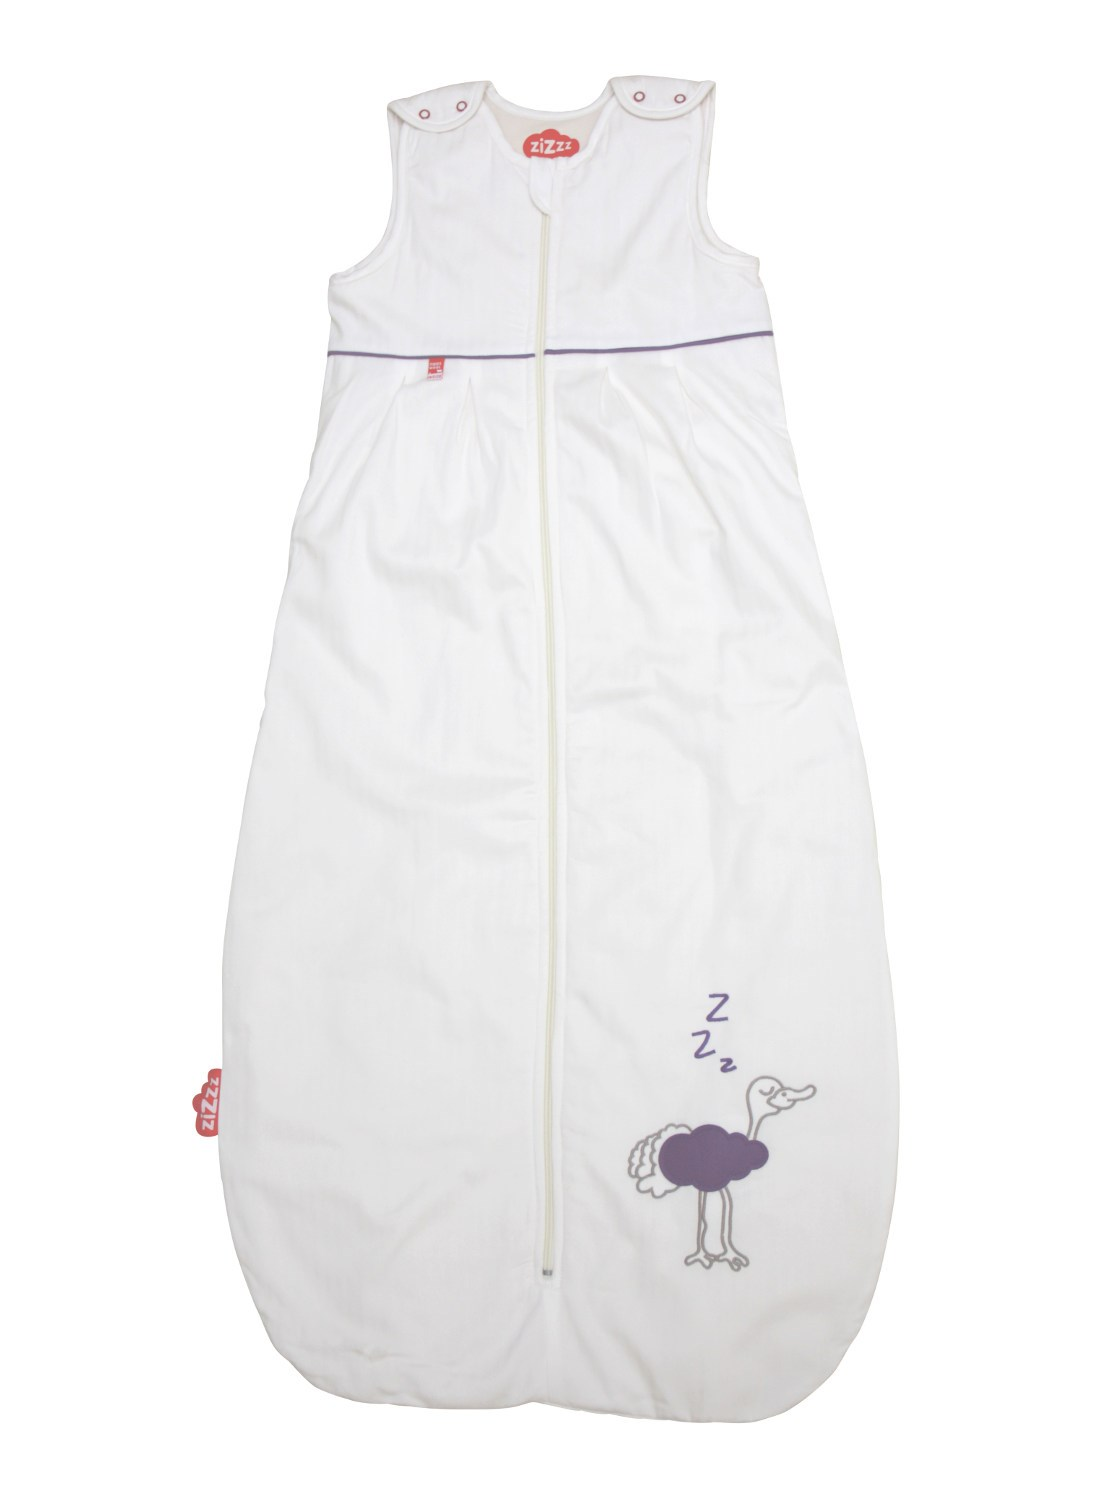 Baby sleeping bag Bird Dodo Lola 24-48 Months (110cm)